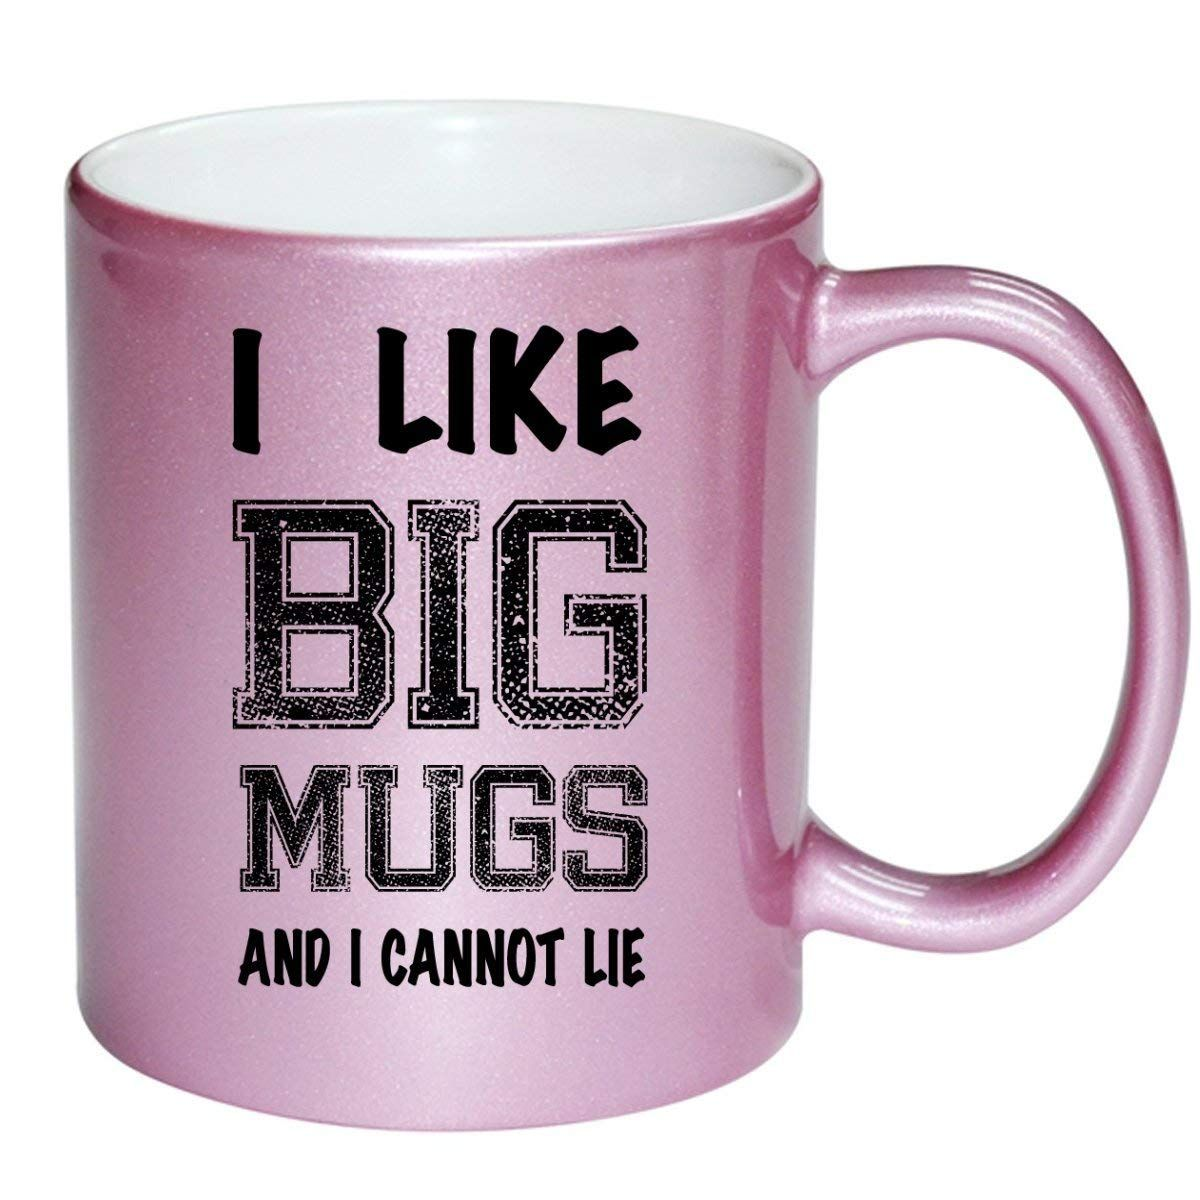 I Like Big Mugs and I Cannot Lie PINK 11 ounce